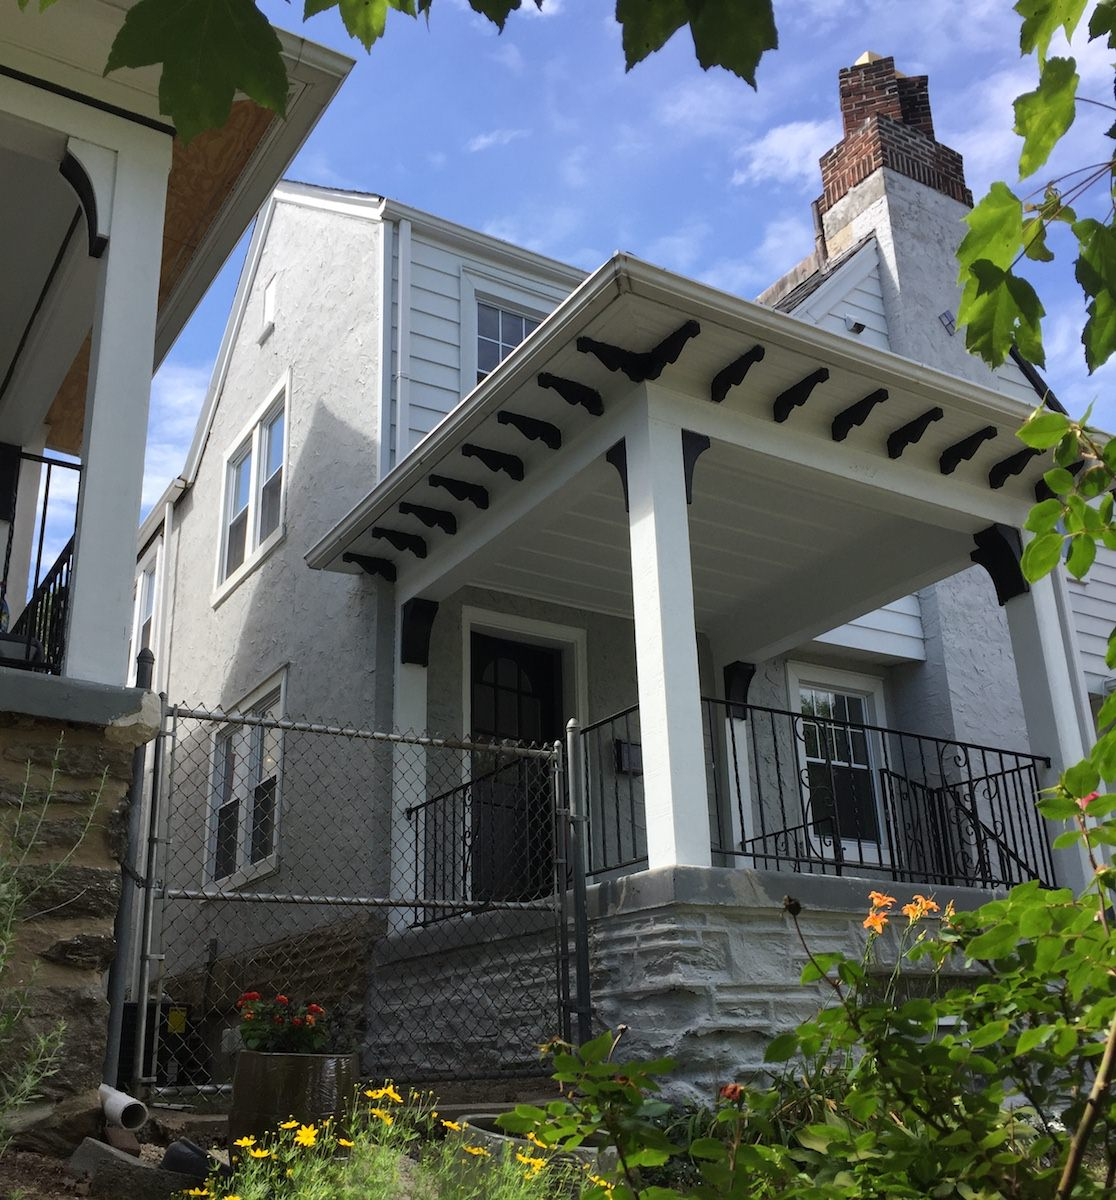 Exterior Painting in Chestnut Hill - After 3